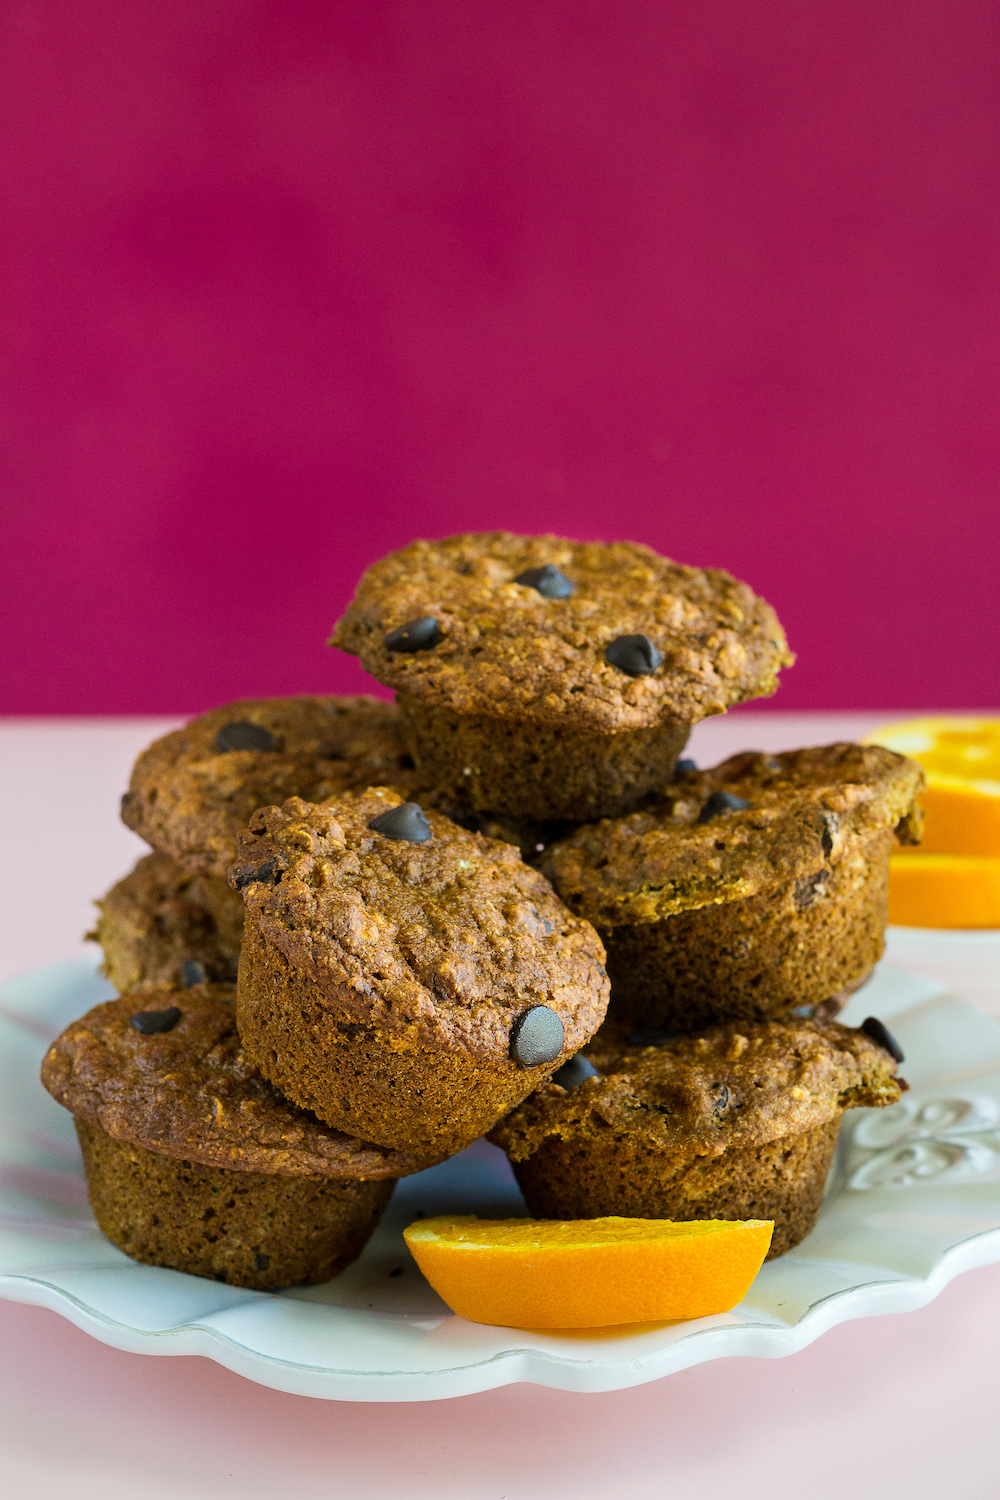 Oil-free Orange Muffins with Chocolate Chips by Unrefined Vegan